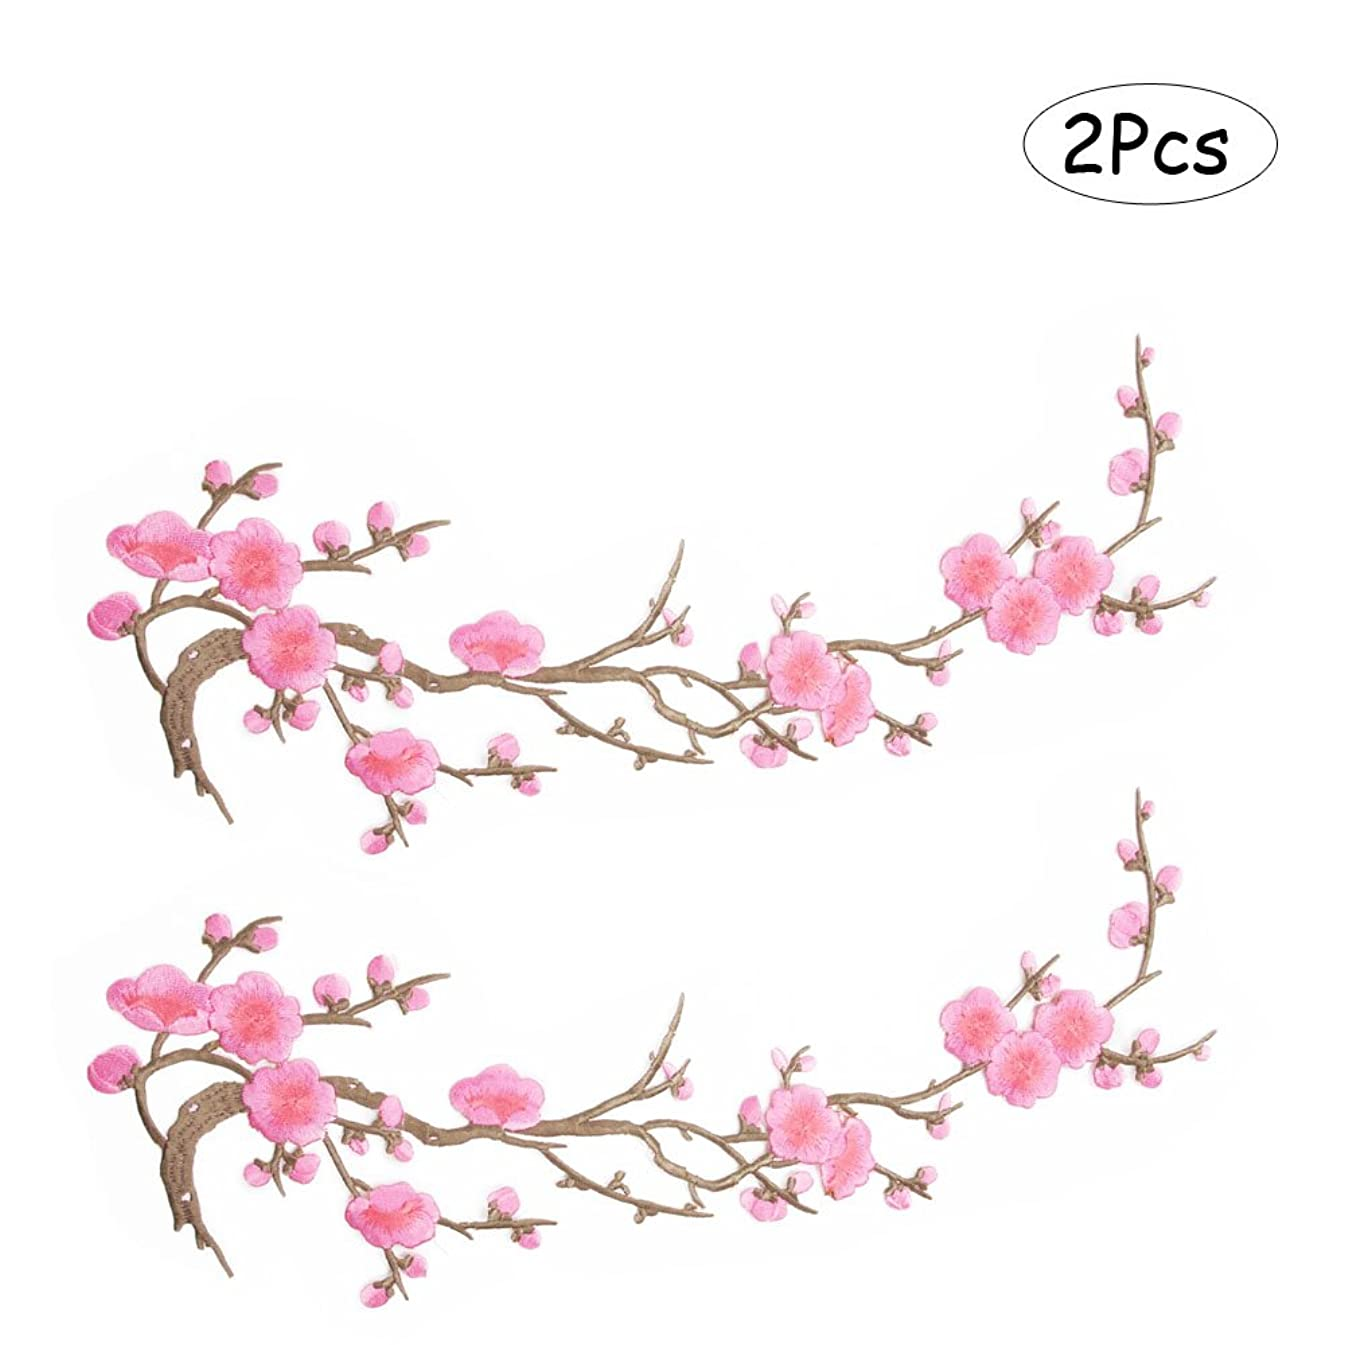 Comidox Blossom Flower Applique Clothing Embroidery Patch Sticker Iron On Sew Cloth DIY Decoration Patch Pink 2pcs